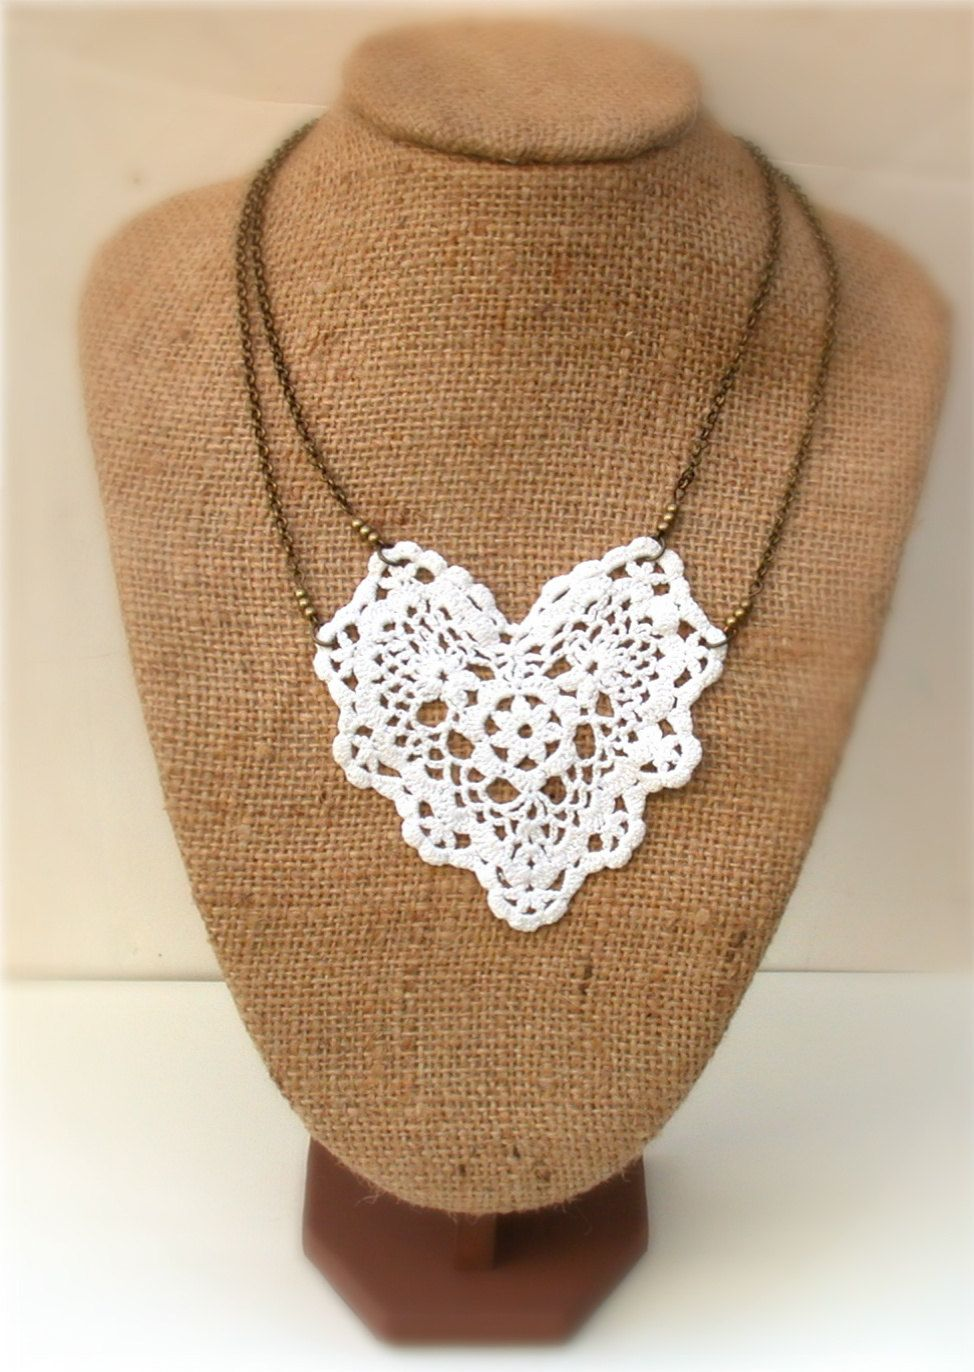 Antique  White Lace  Necklace Perfect for Bride, Wedding, Bridesmaids And Formal. $34.00, via Etsy.